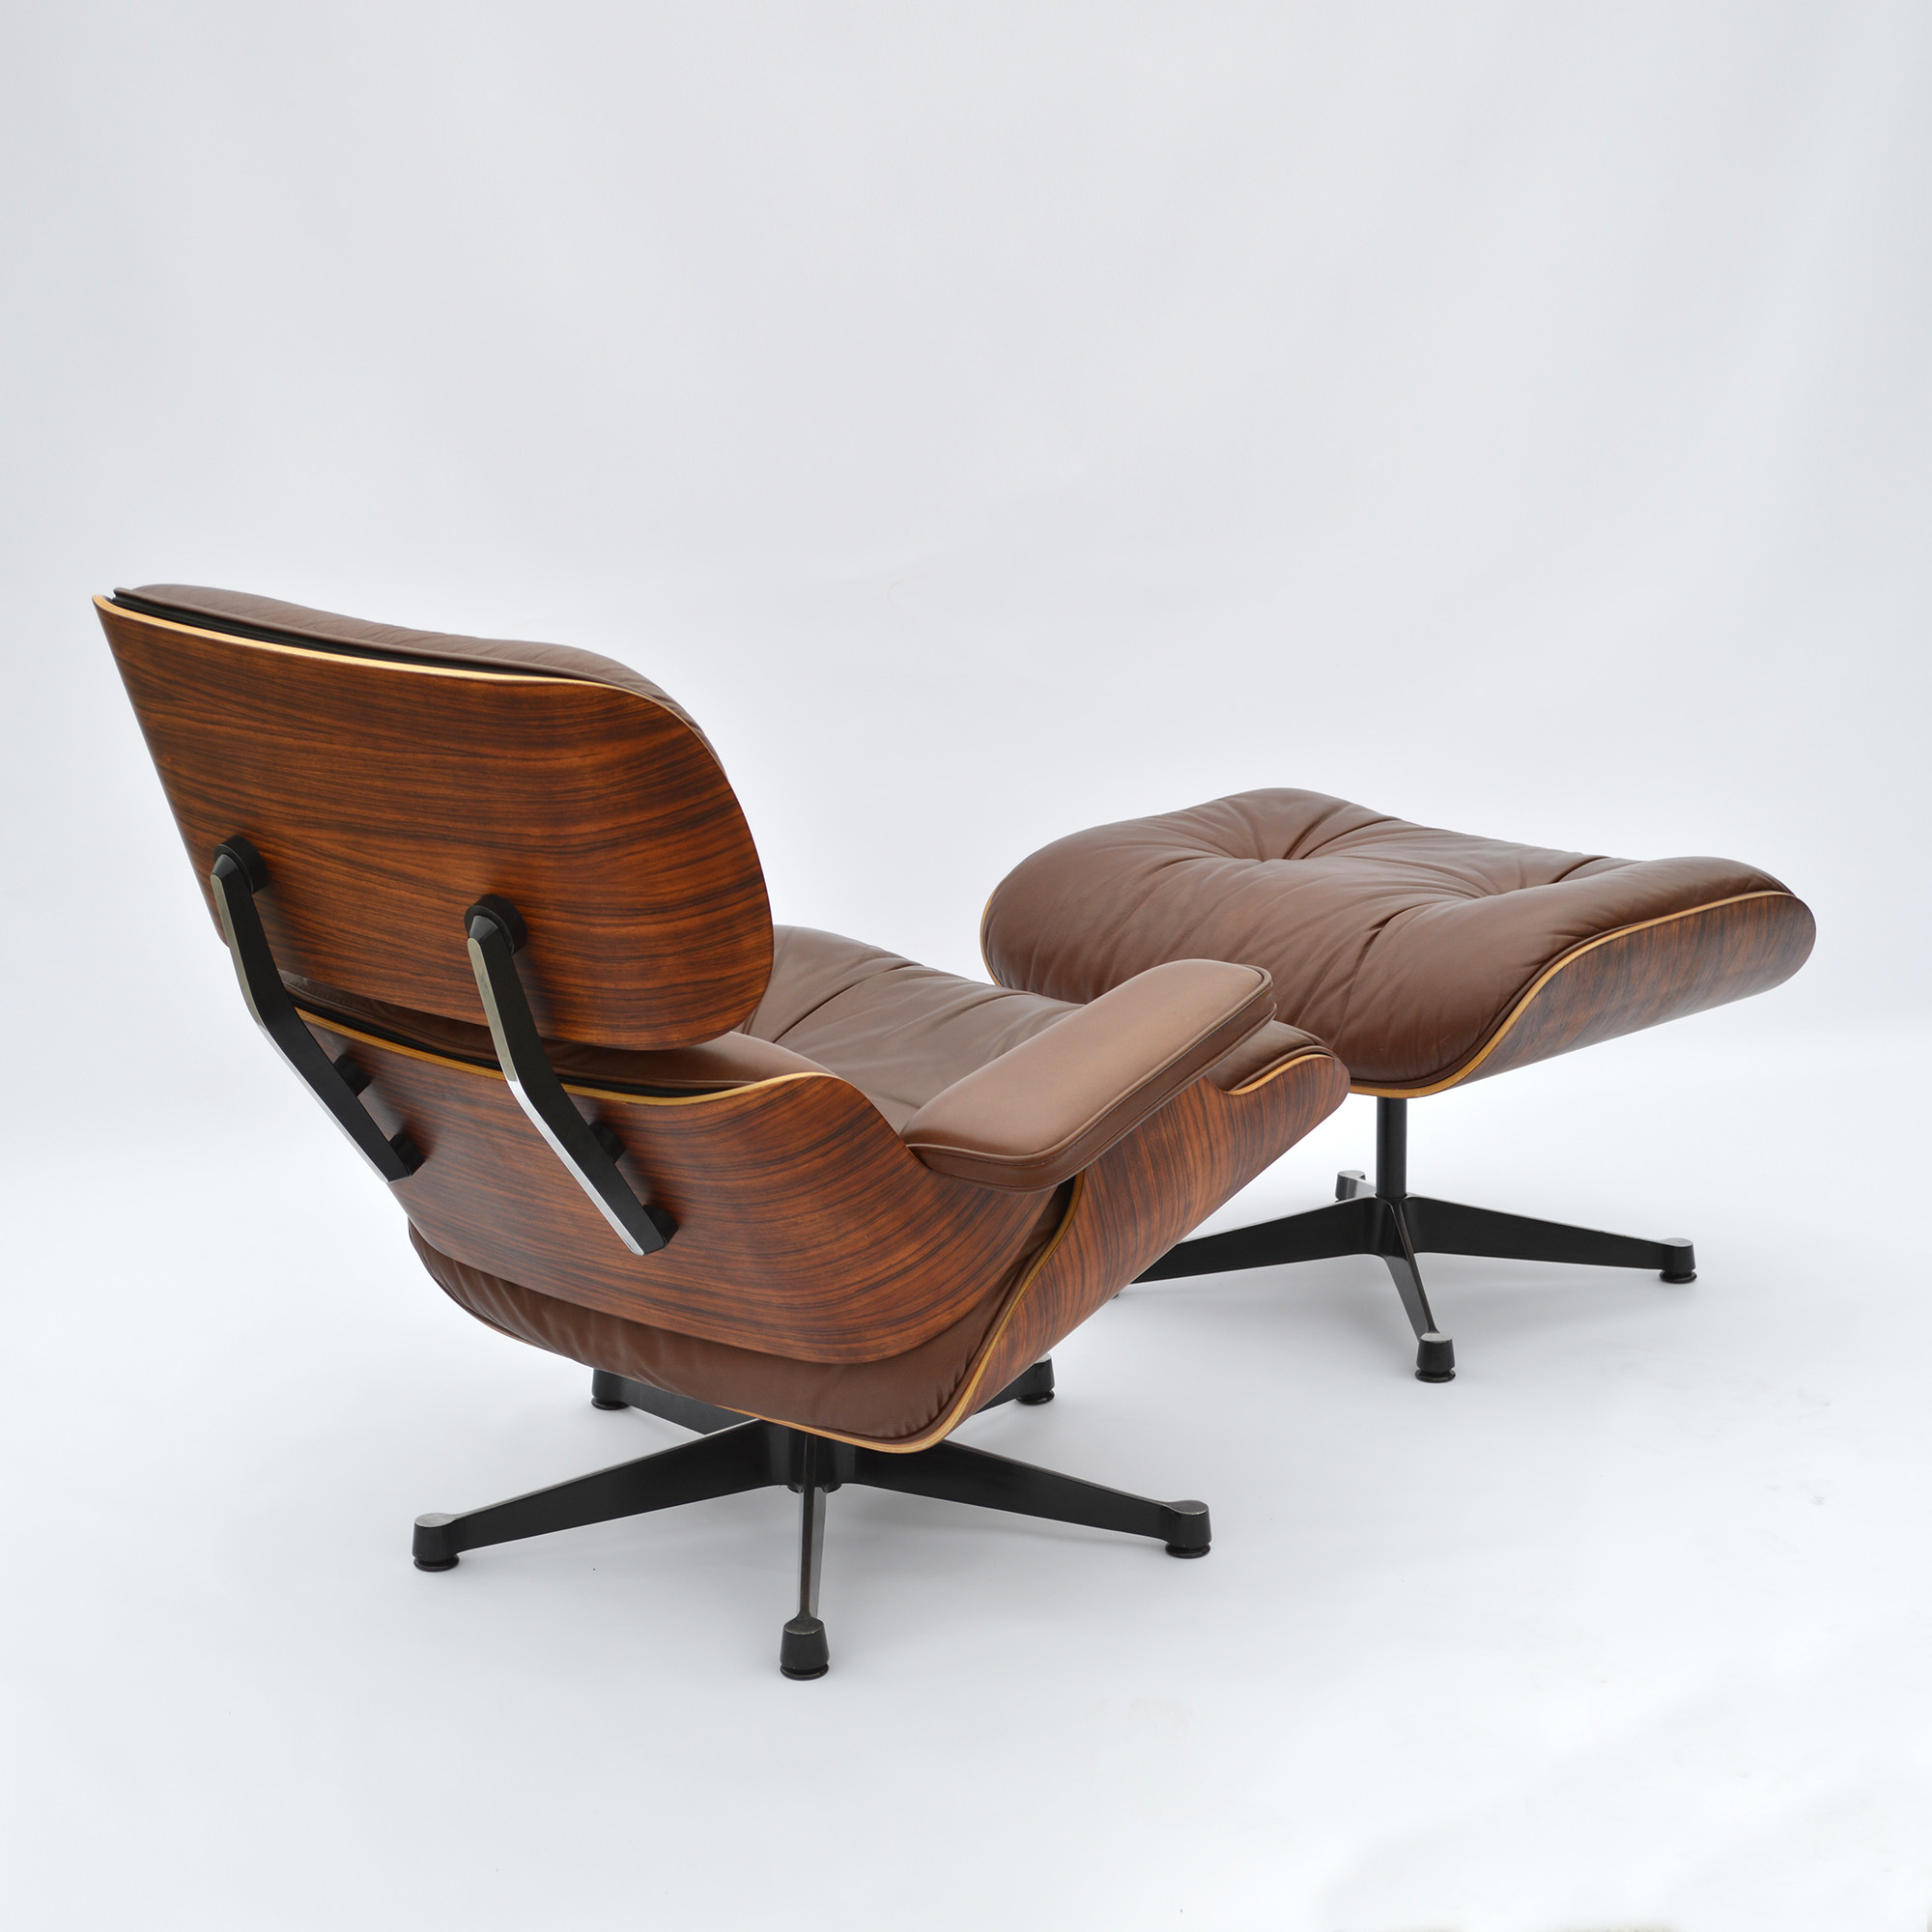 1977 rio rosewood original eames lounge chair ottoman